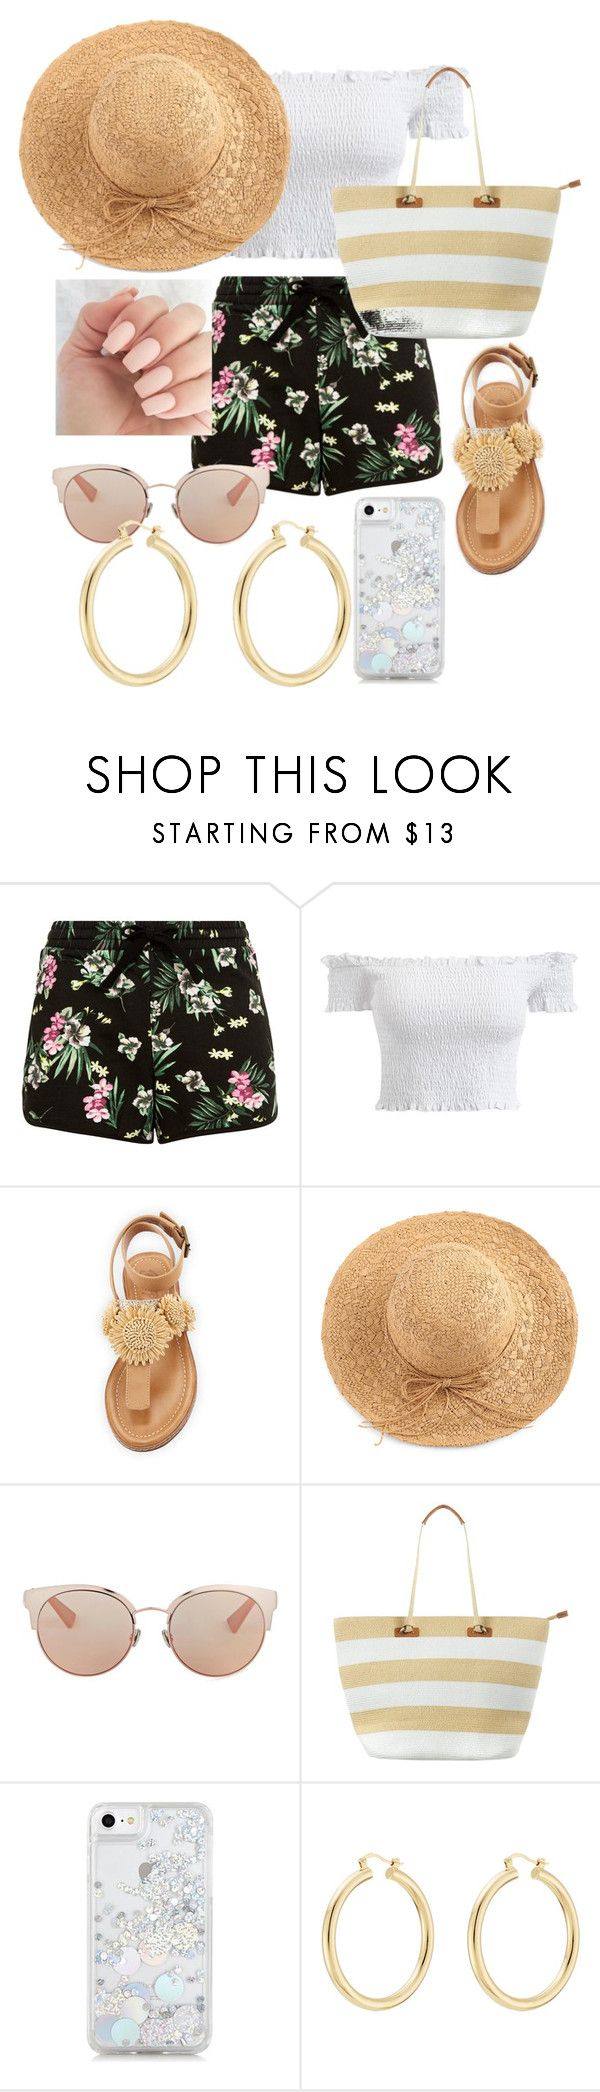 """""""Summer Outfit for Yna"""" by abbs-gaille on Polyvore featuring Bettye, WithChic, Christian Dior, Phase Eight, Skinnydip and Isabel Marant"""